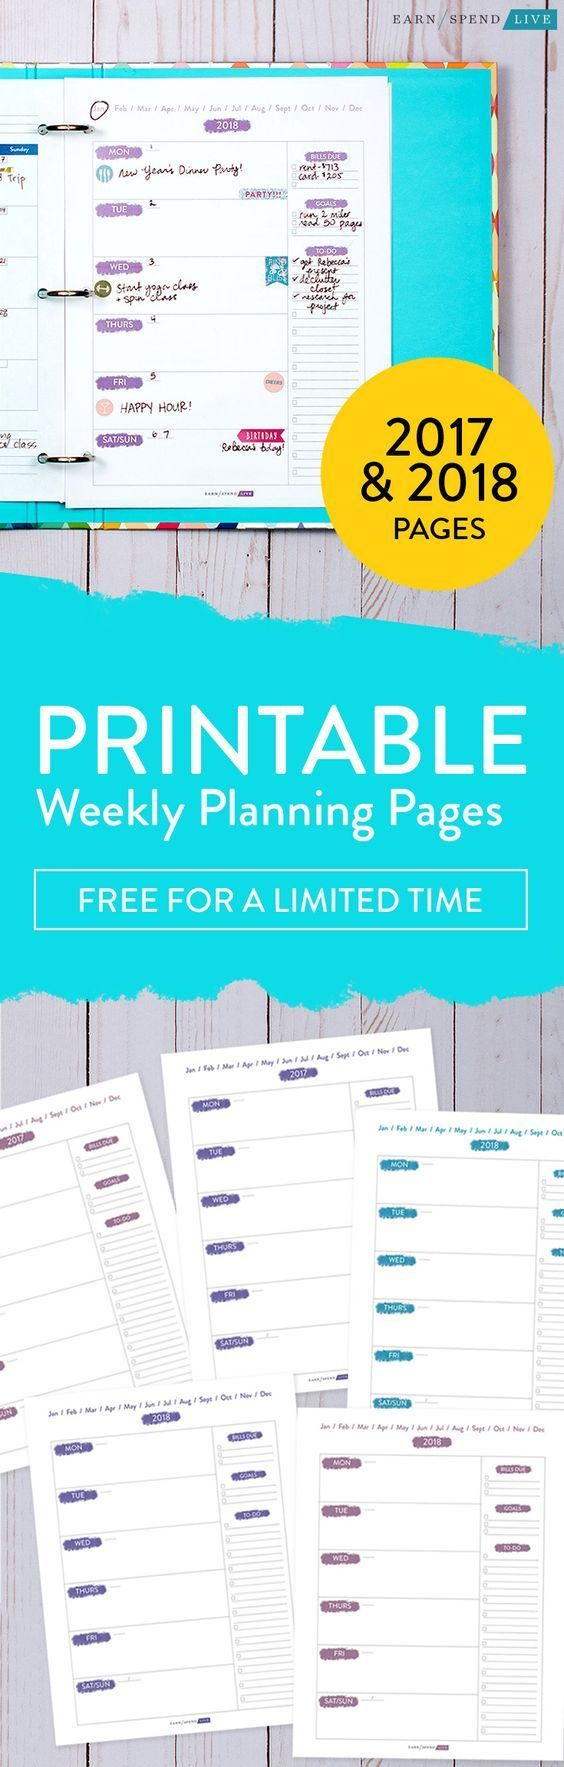 Printable Weekly Planning Pages for 2018 to help you get organized. Space for bills, goals, and your to-dos!  free printable planner, printable planner, weekly planner, free weekly planner, free weekly planning printable, weekly planner pages